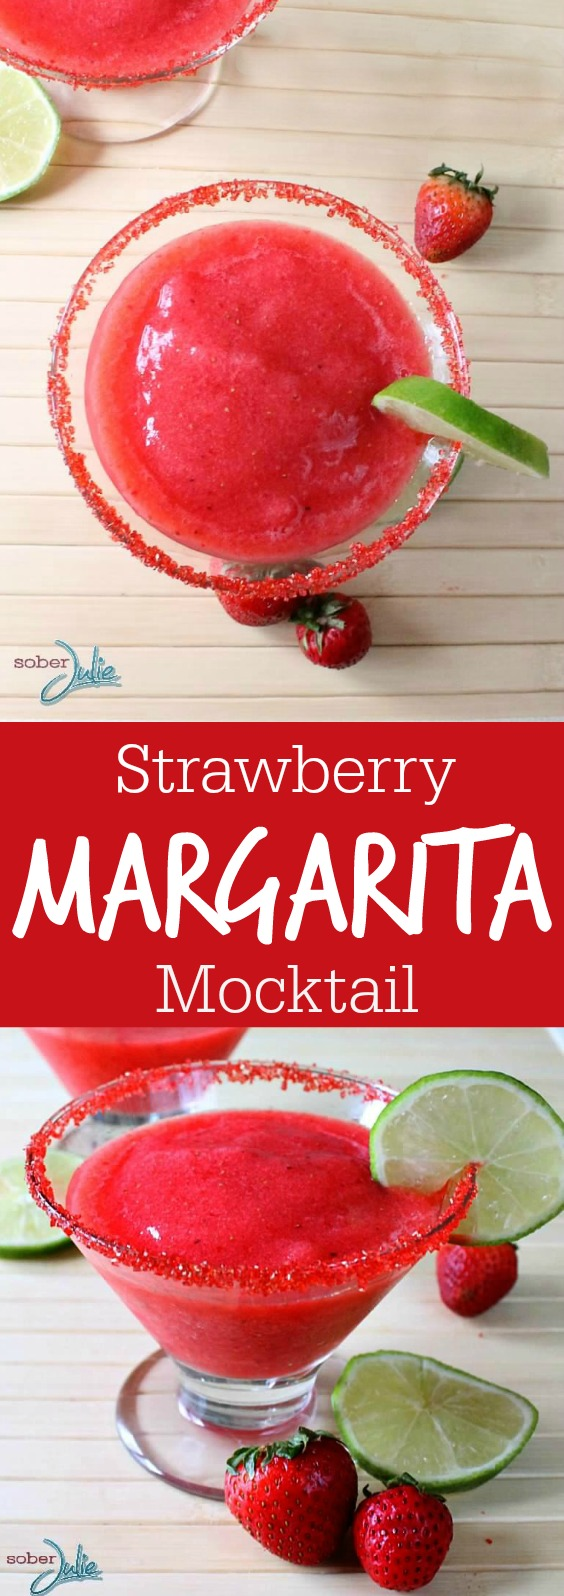 strawberry margarita mocktail non alcoholic drink recipe